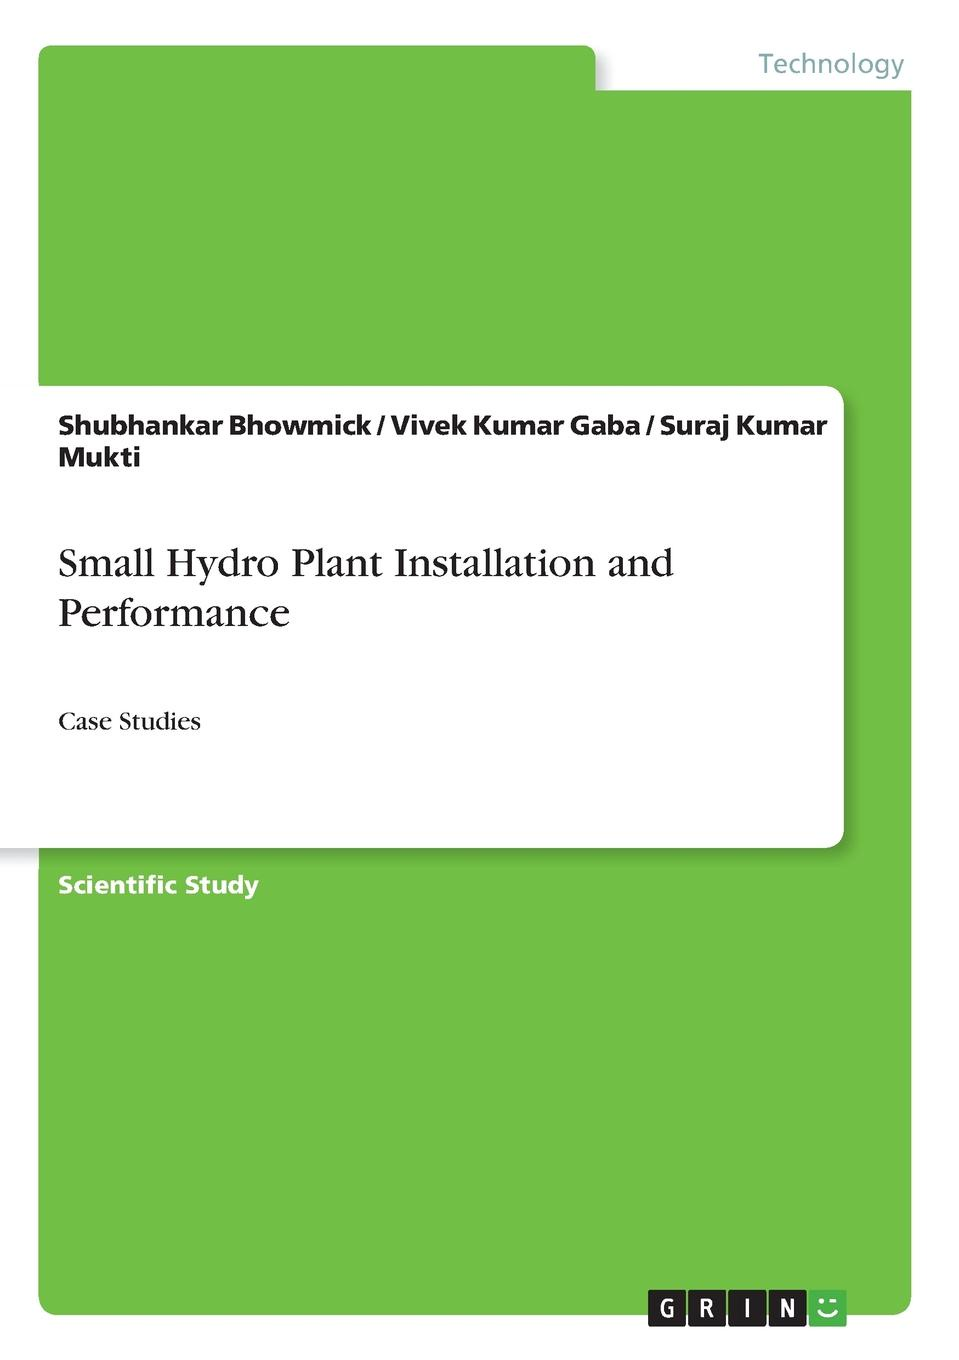 Shubhankar Bhowmick, Vivek Kumar Gaba, Suraj Kumar Mukti Small Hydro Plant Installation and Performance sachin kumar sharma rationalisation of input subsidy in india under trade liberalisation